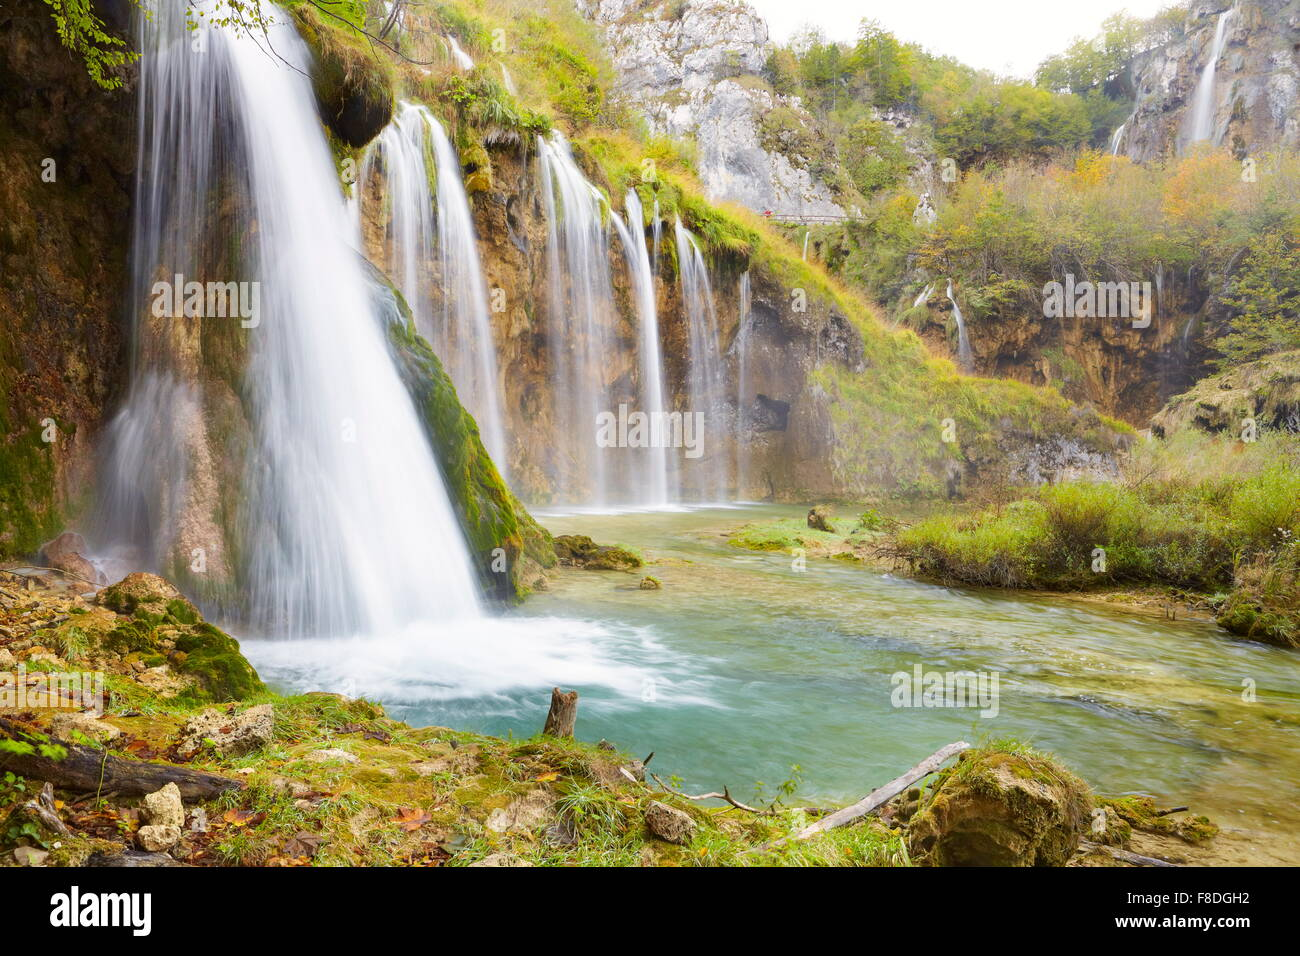 Croatia - Waterfalls in Plitvice Lakes National Park in autumn, UNESCO - Stock Image